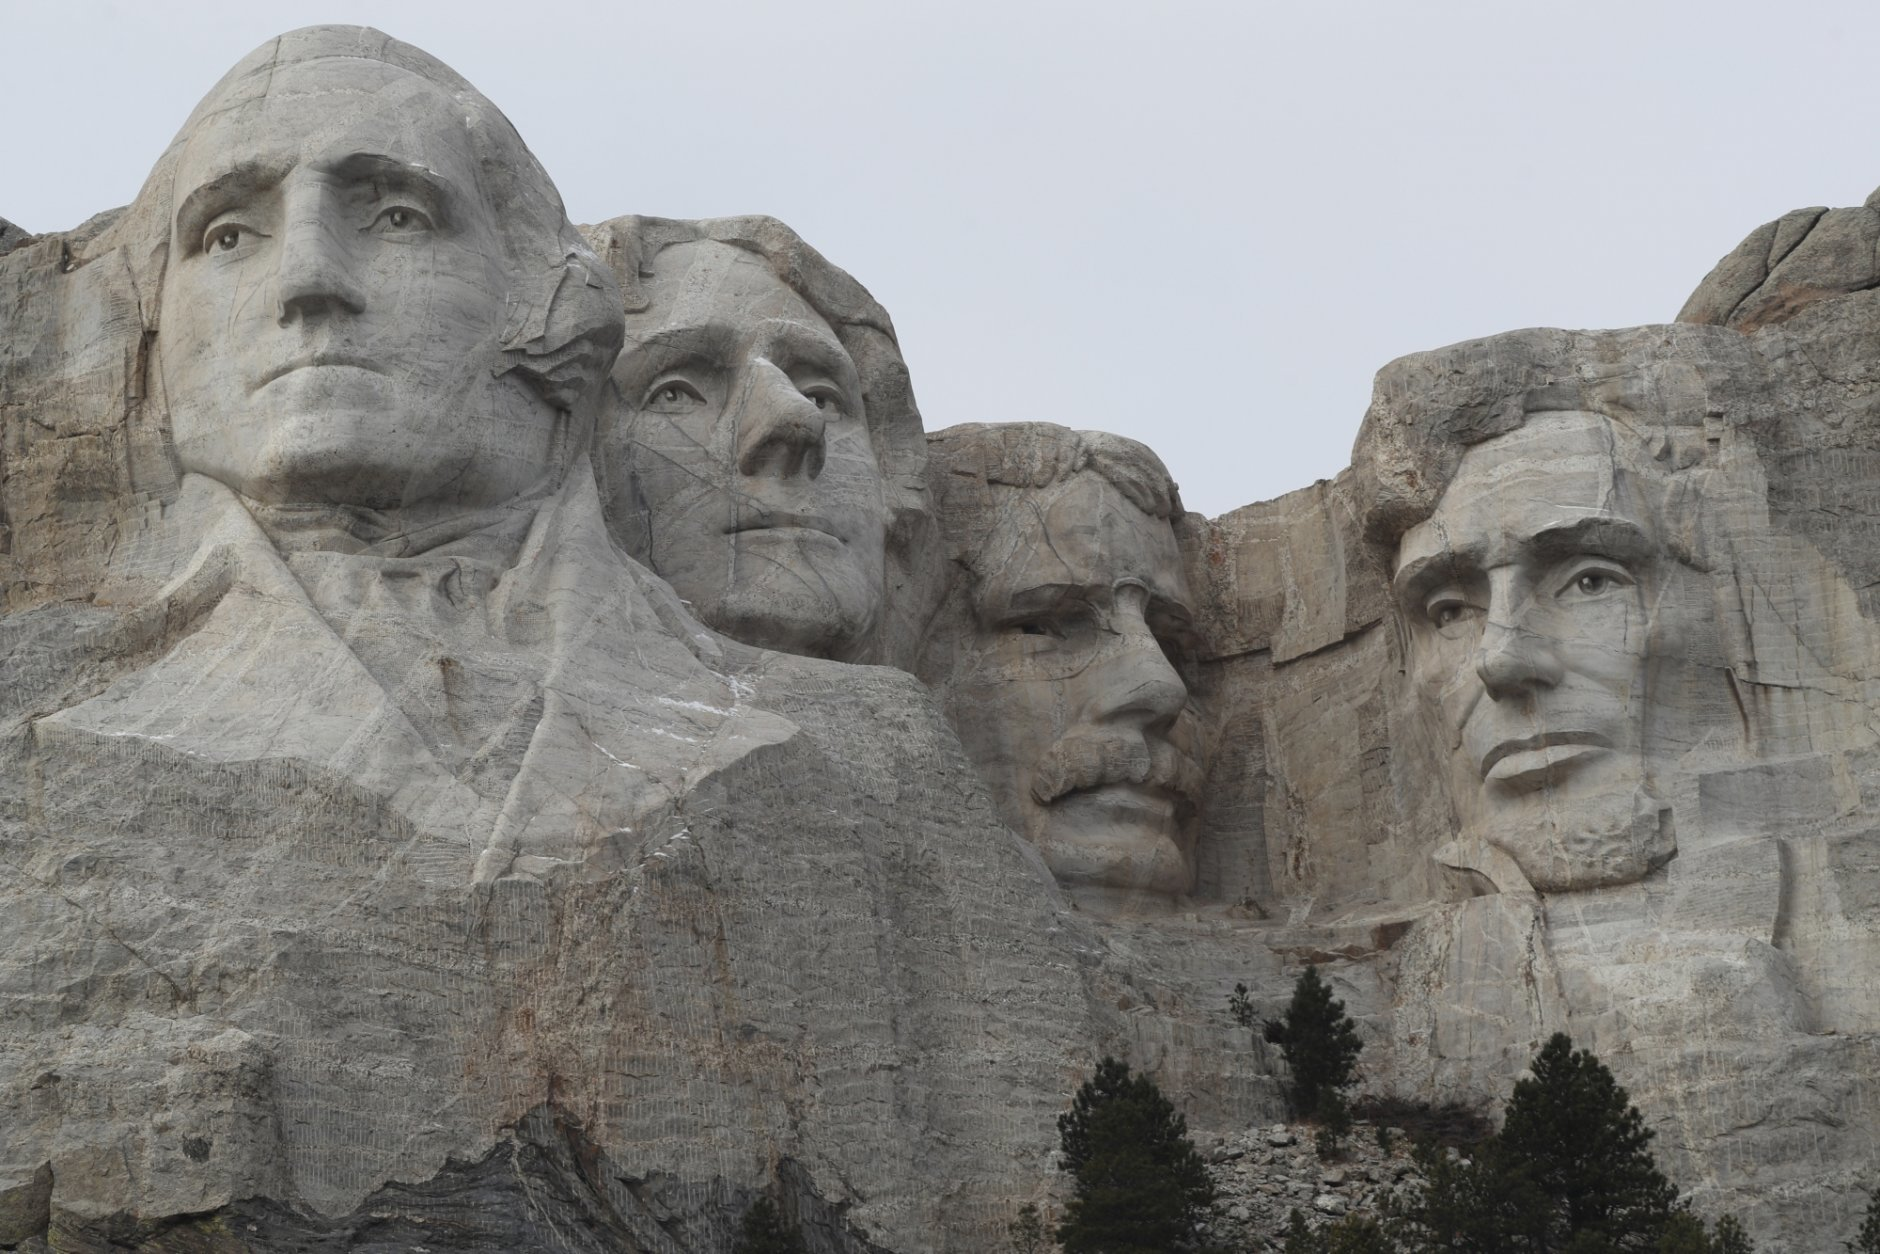 FILE - In this Dec. 9, 2016, file photo, the faces of the presidents that make up the Mount Rushmore monument are shown near Keystone, S.D. (AP Photo/David Zalubowski, File)